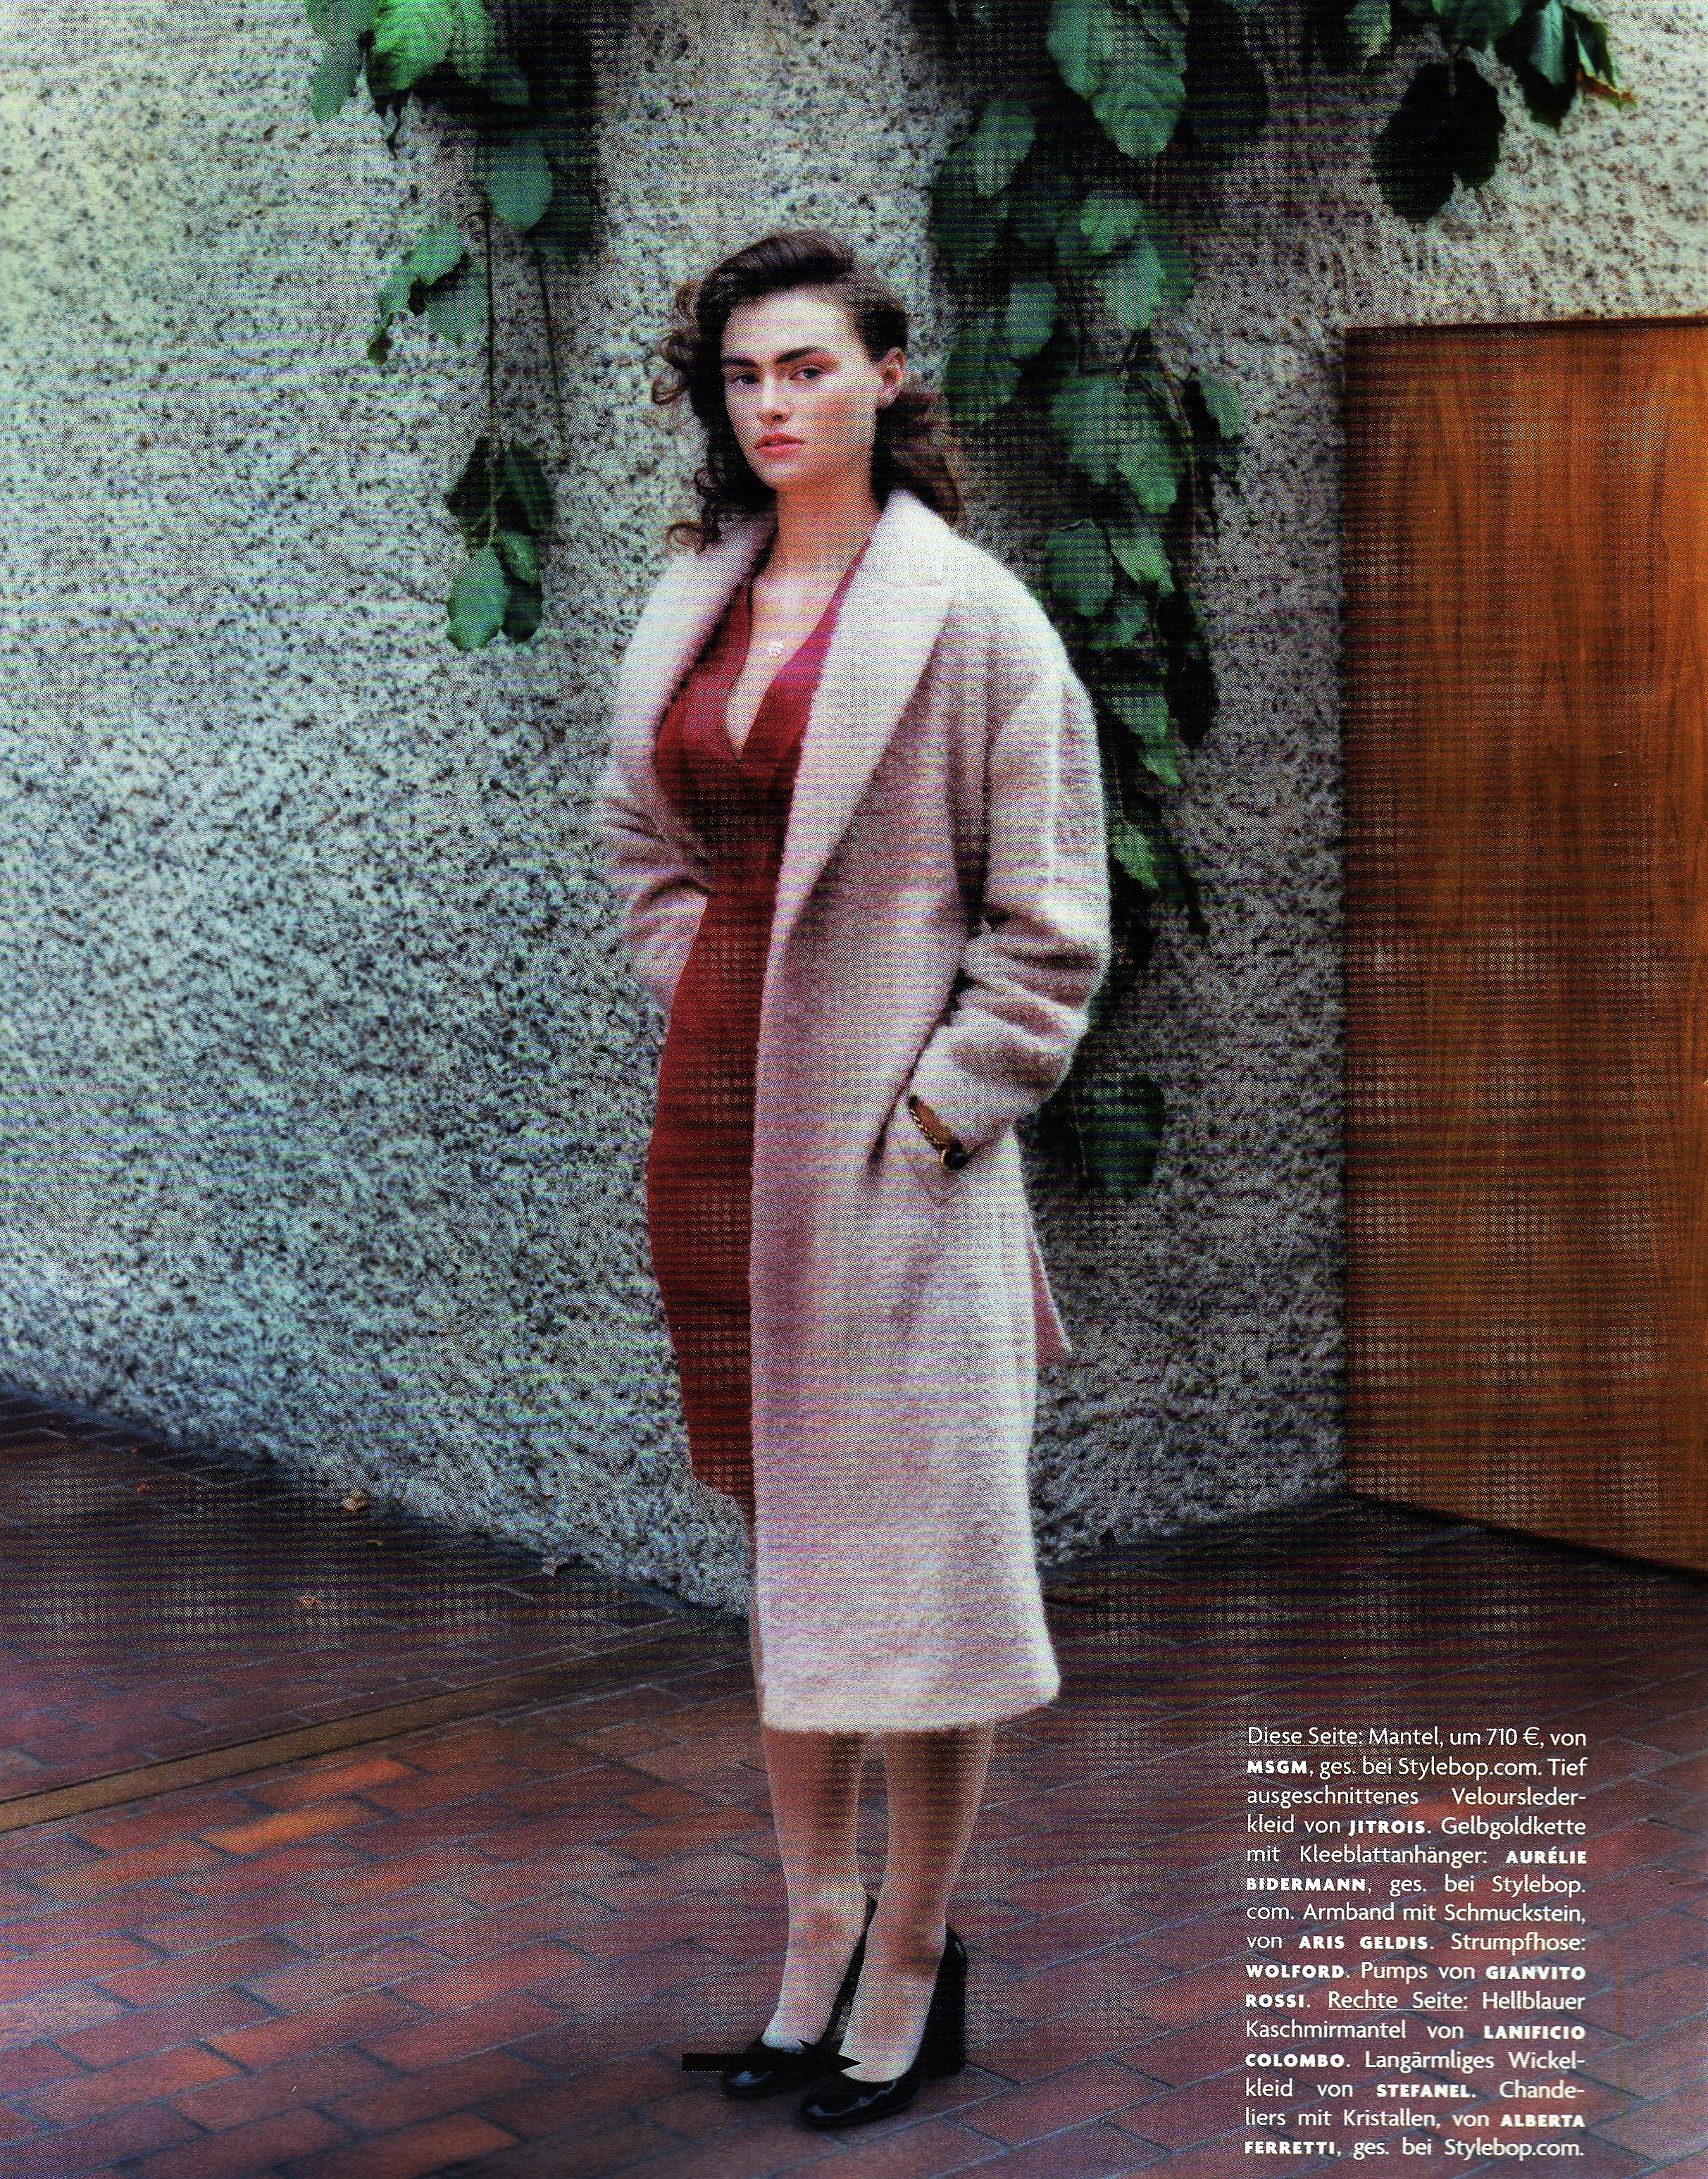 german vogue october 201520151007_14391940.jpg